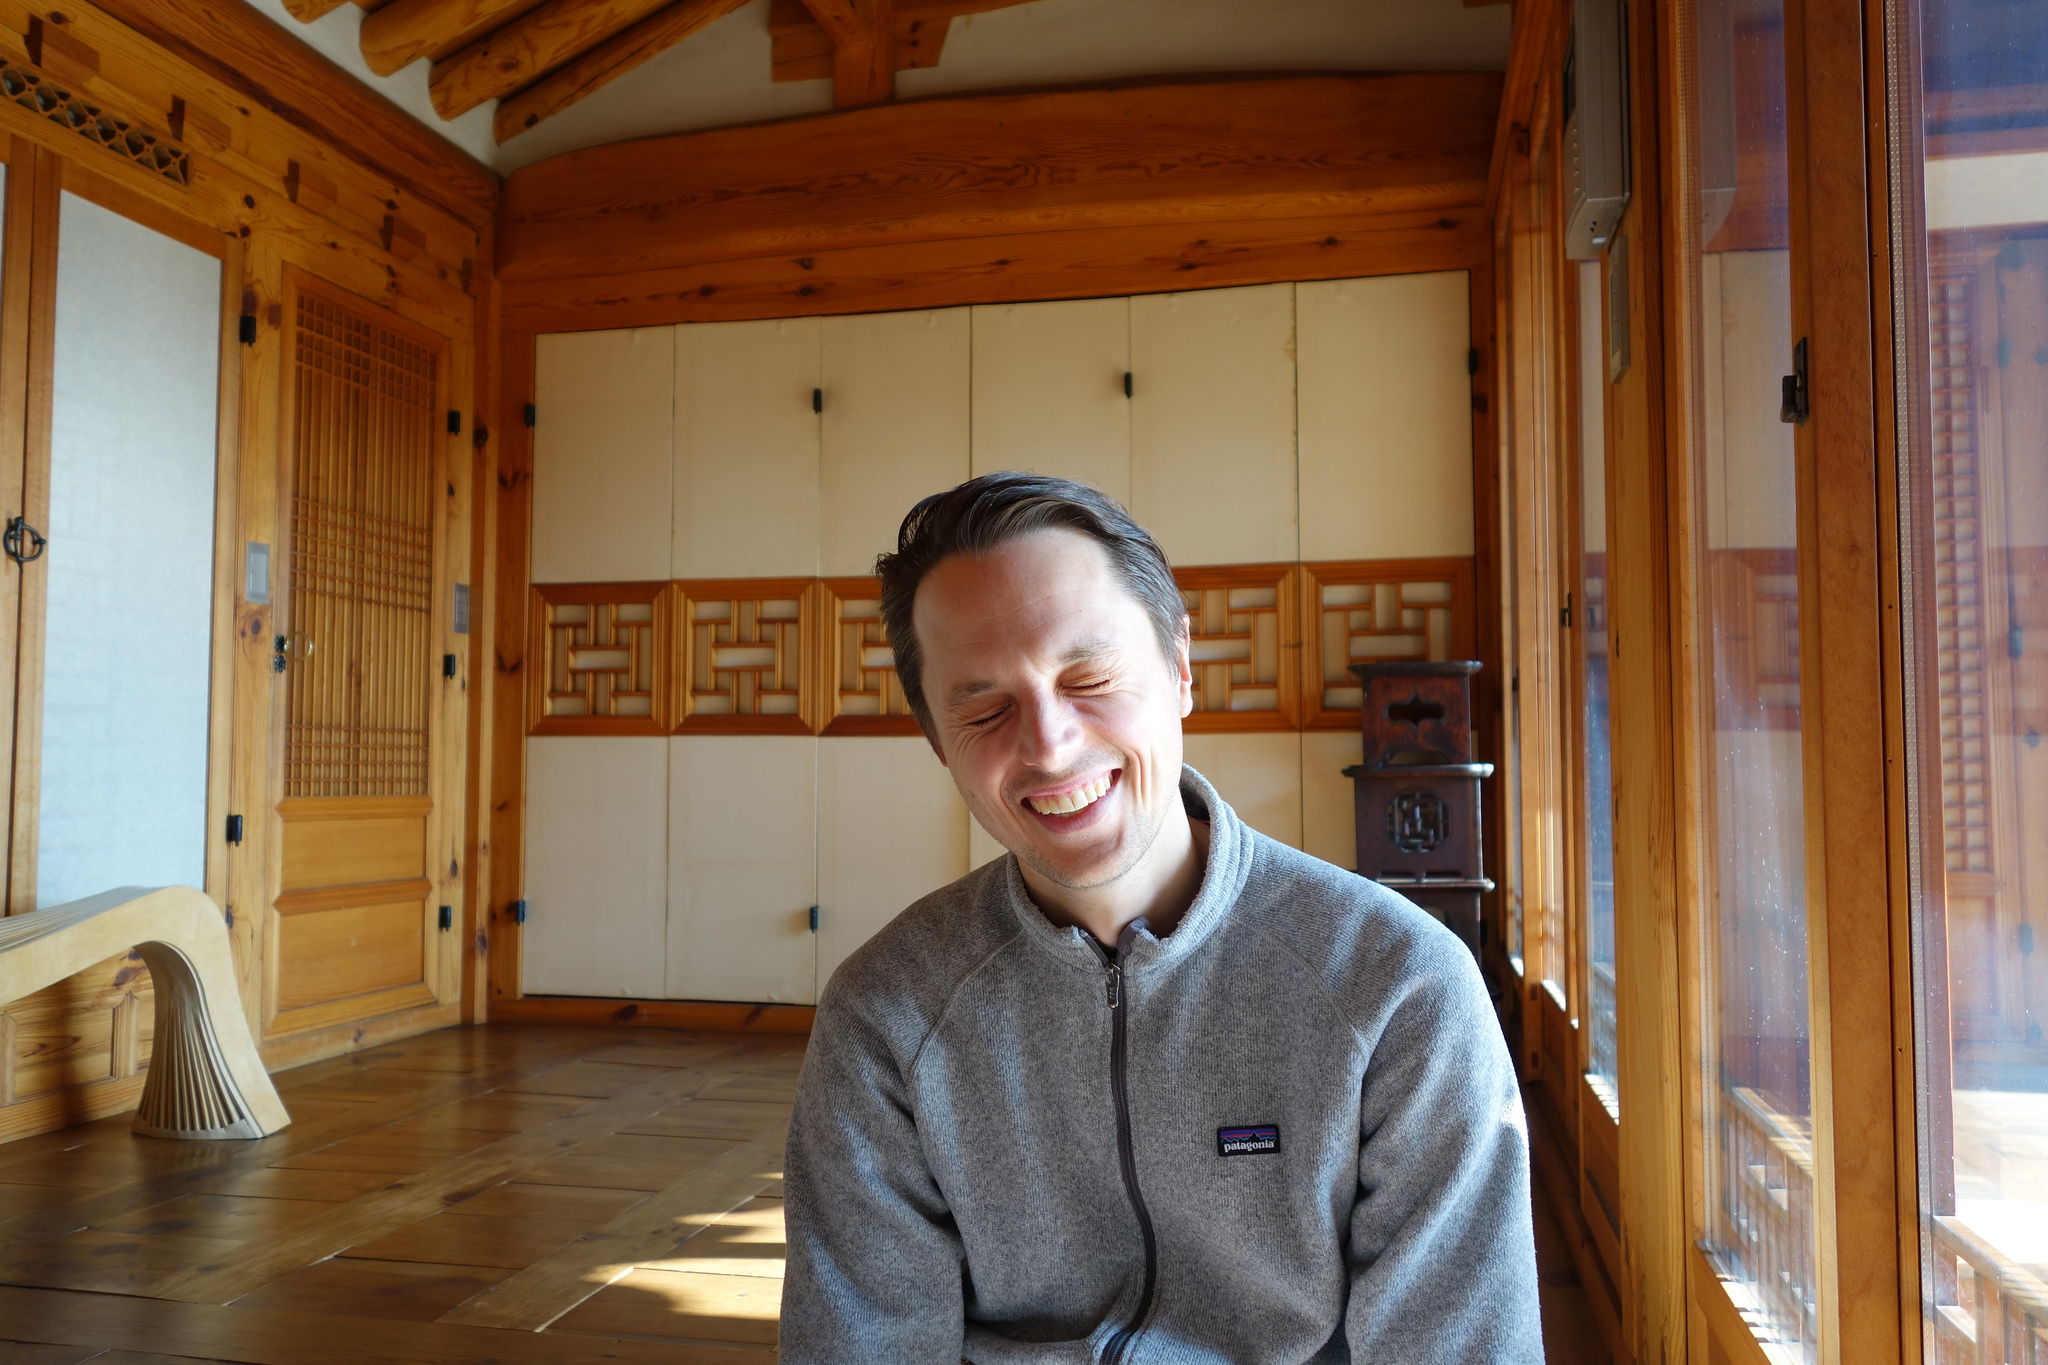 Kars Alfrink at Simsimheon in 2014